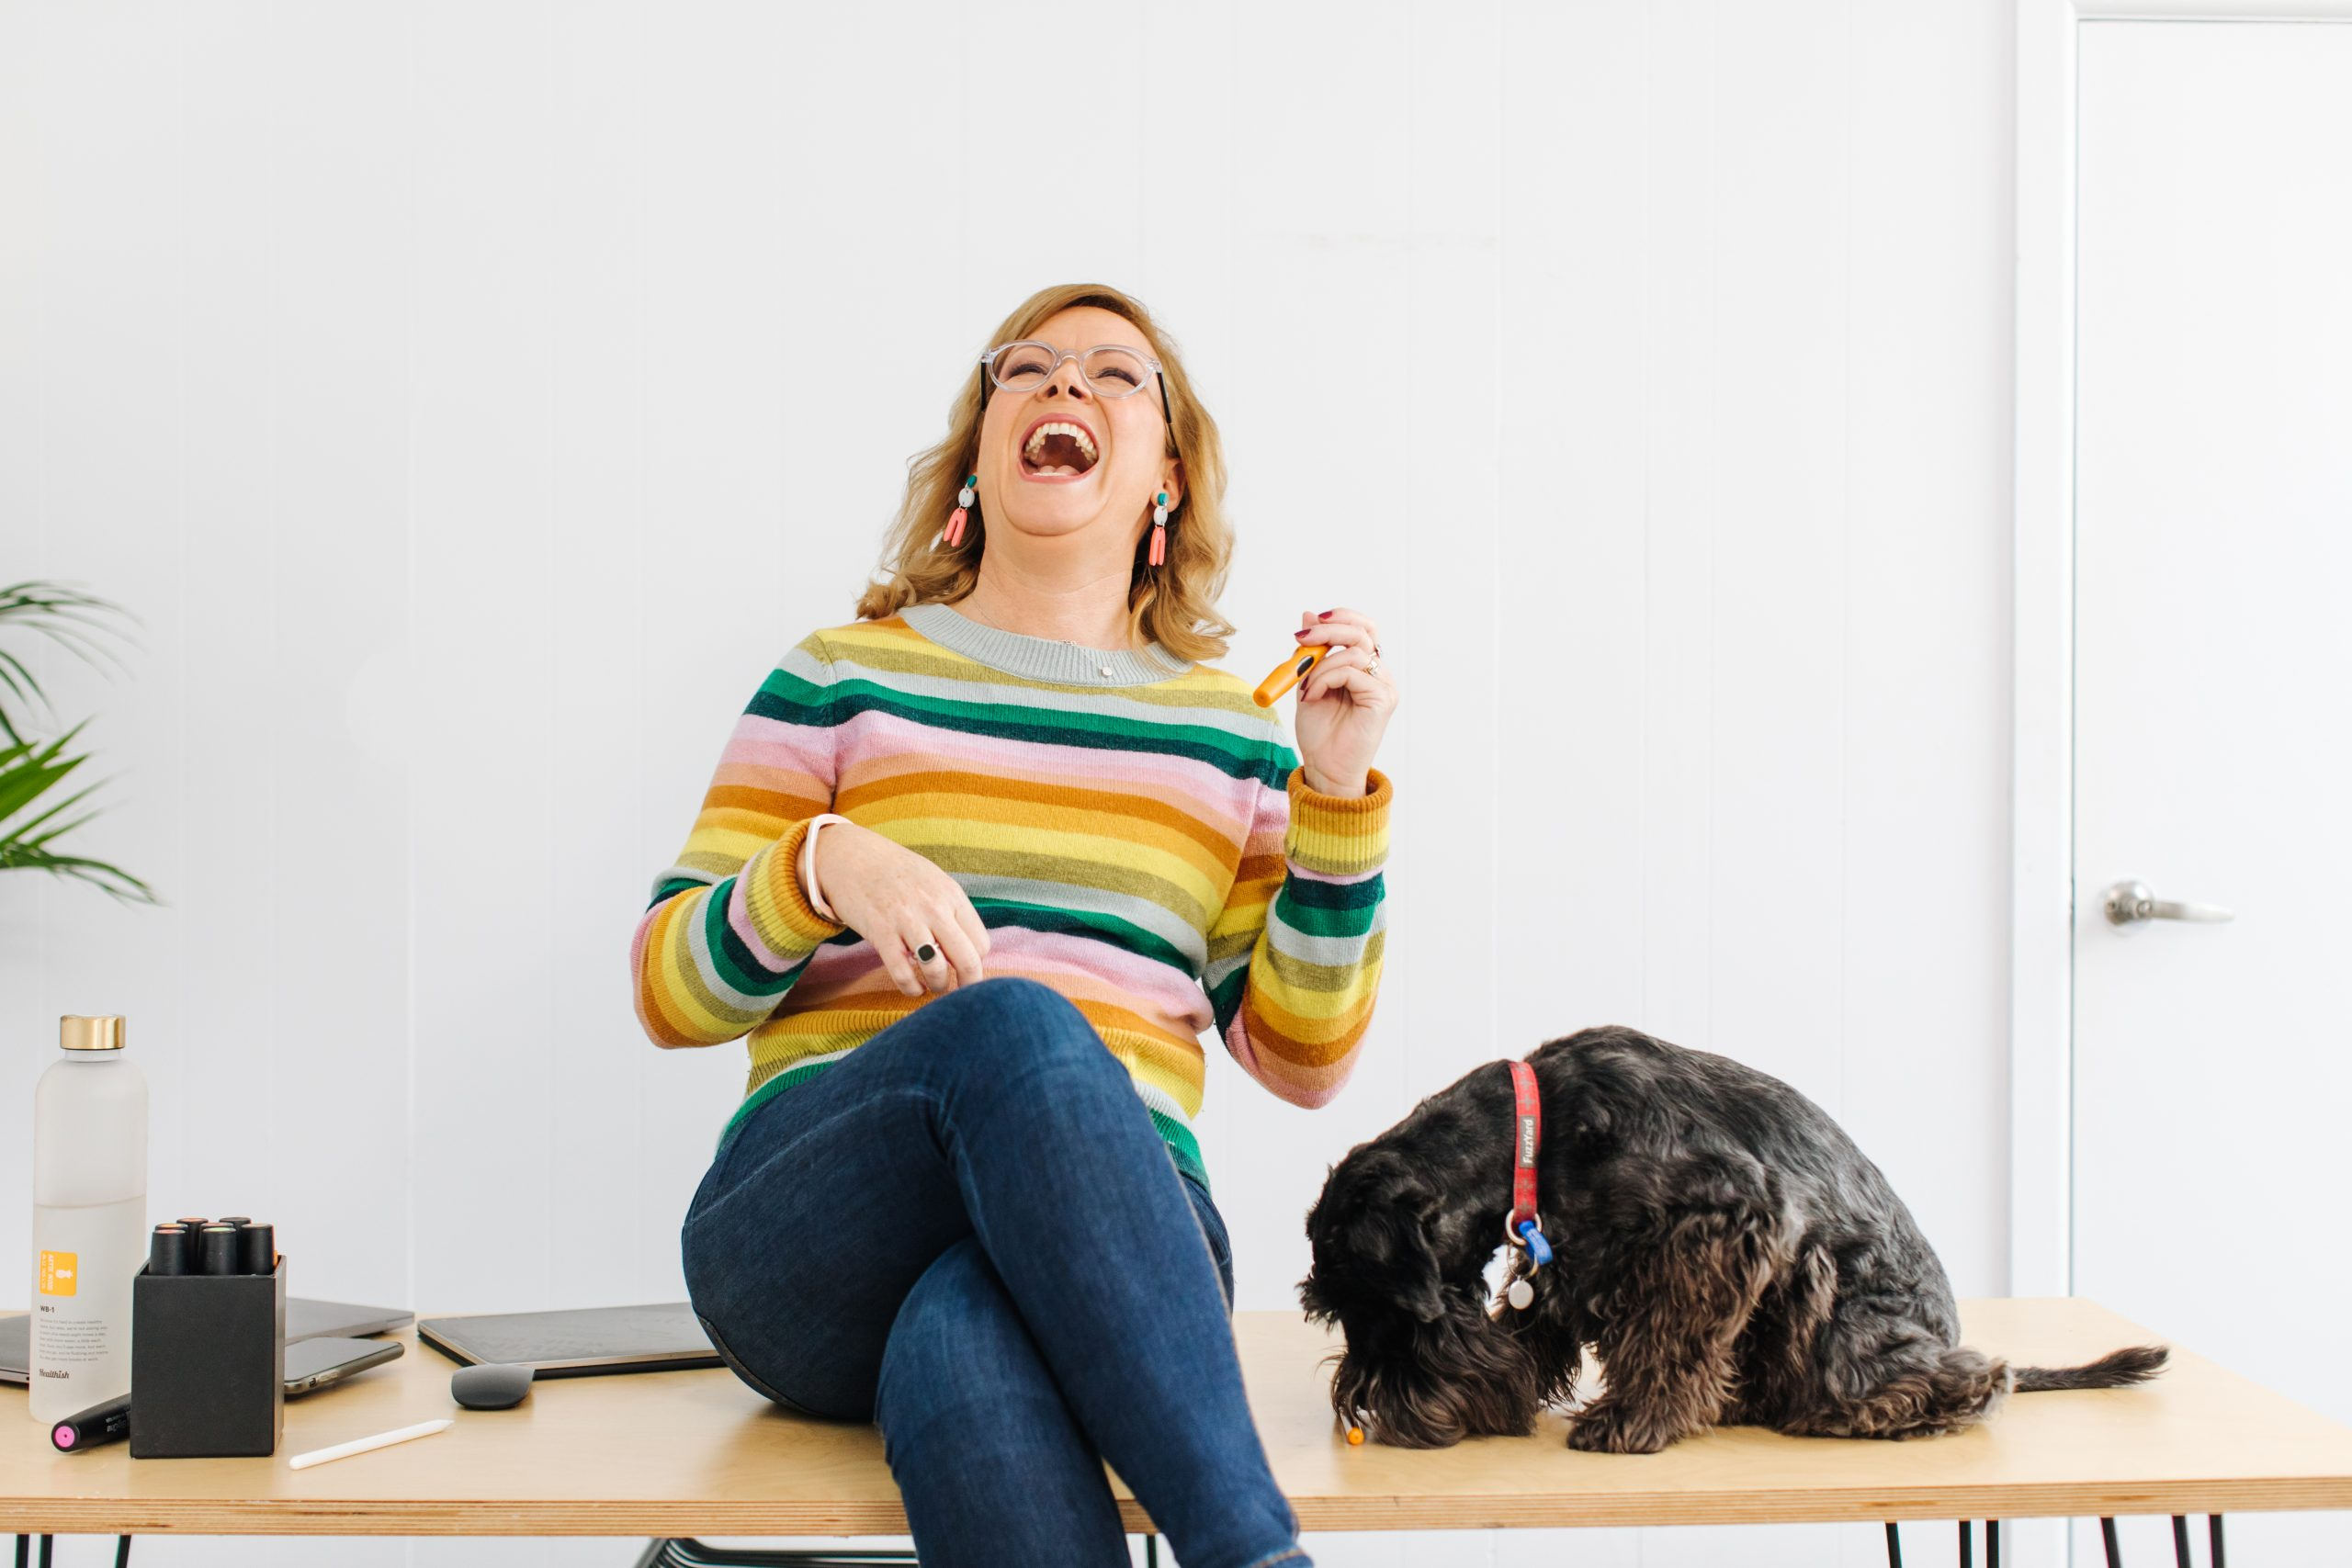 Debbie sitting on a desk with her dog having a really good laugh